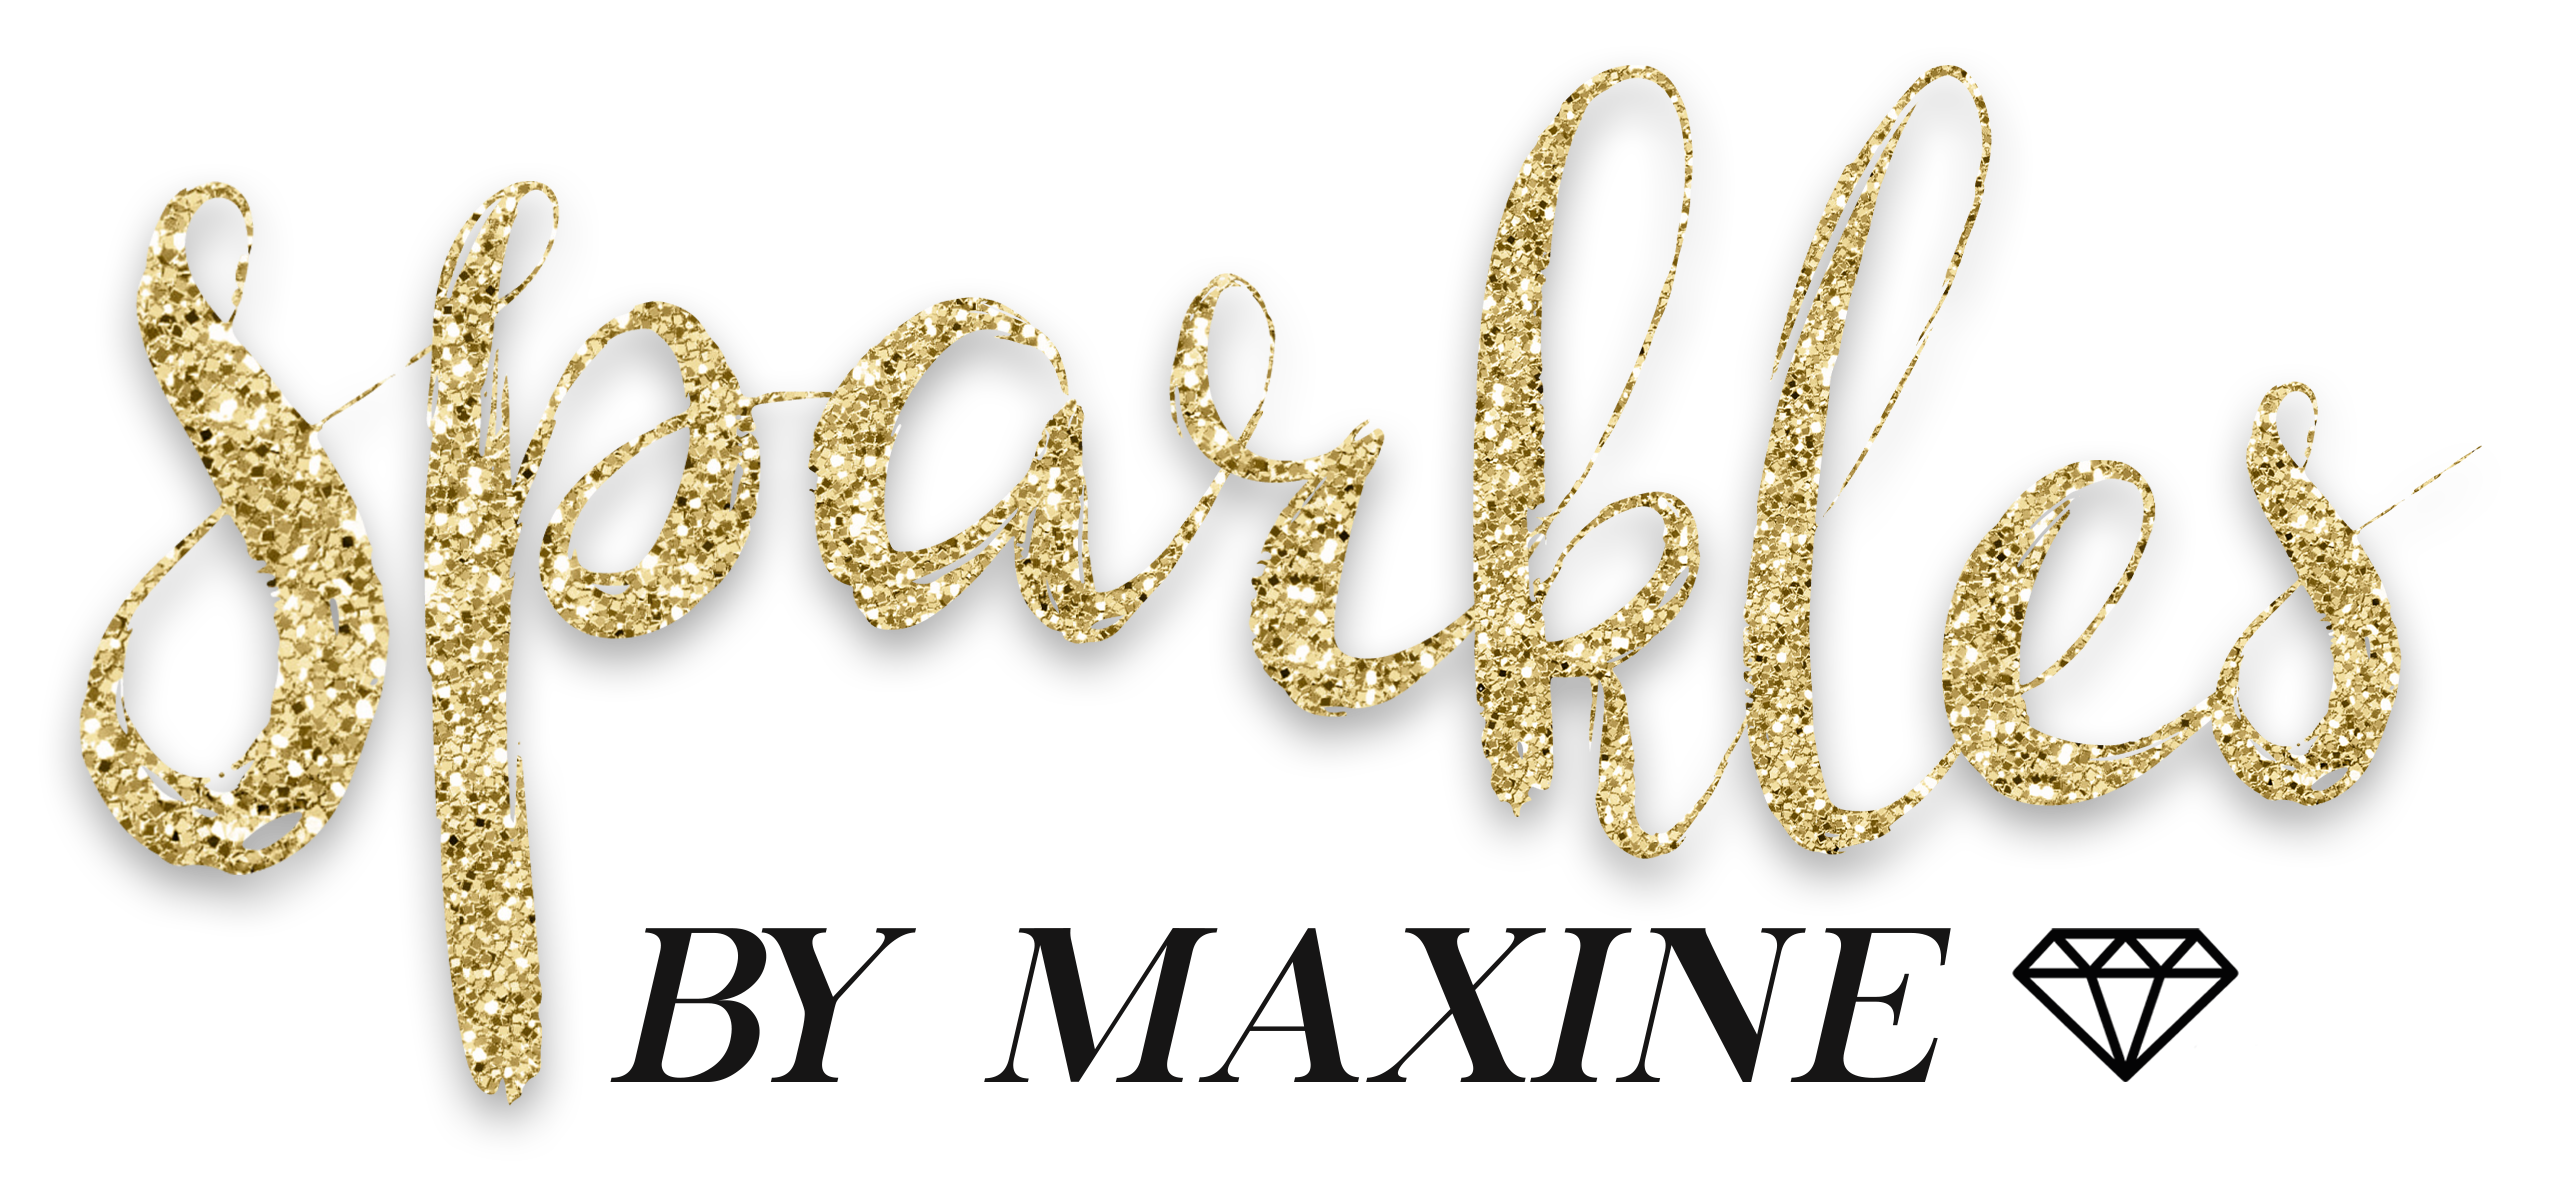 Sparkle by Maxine